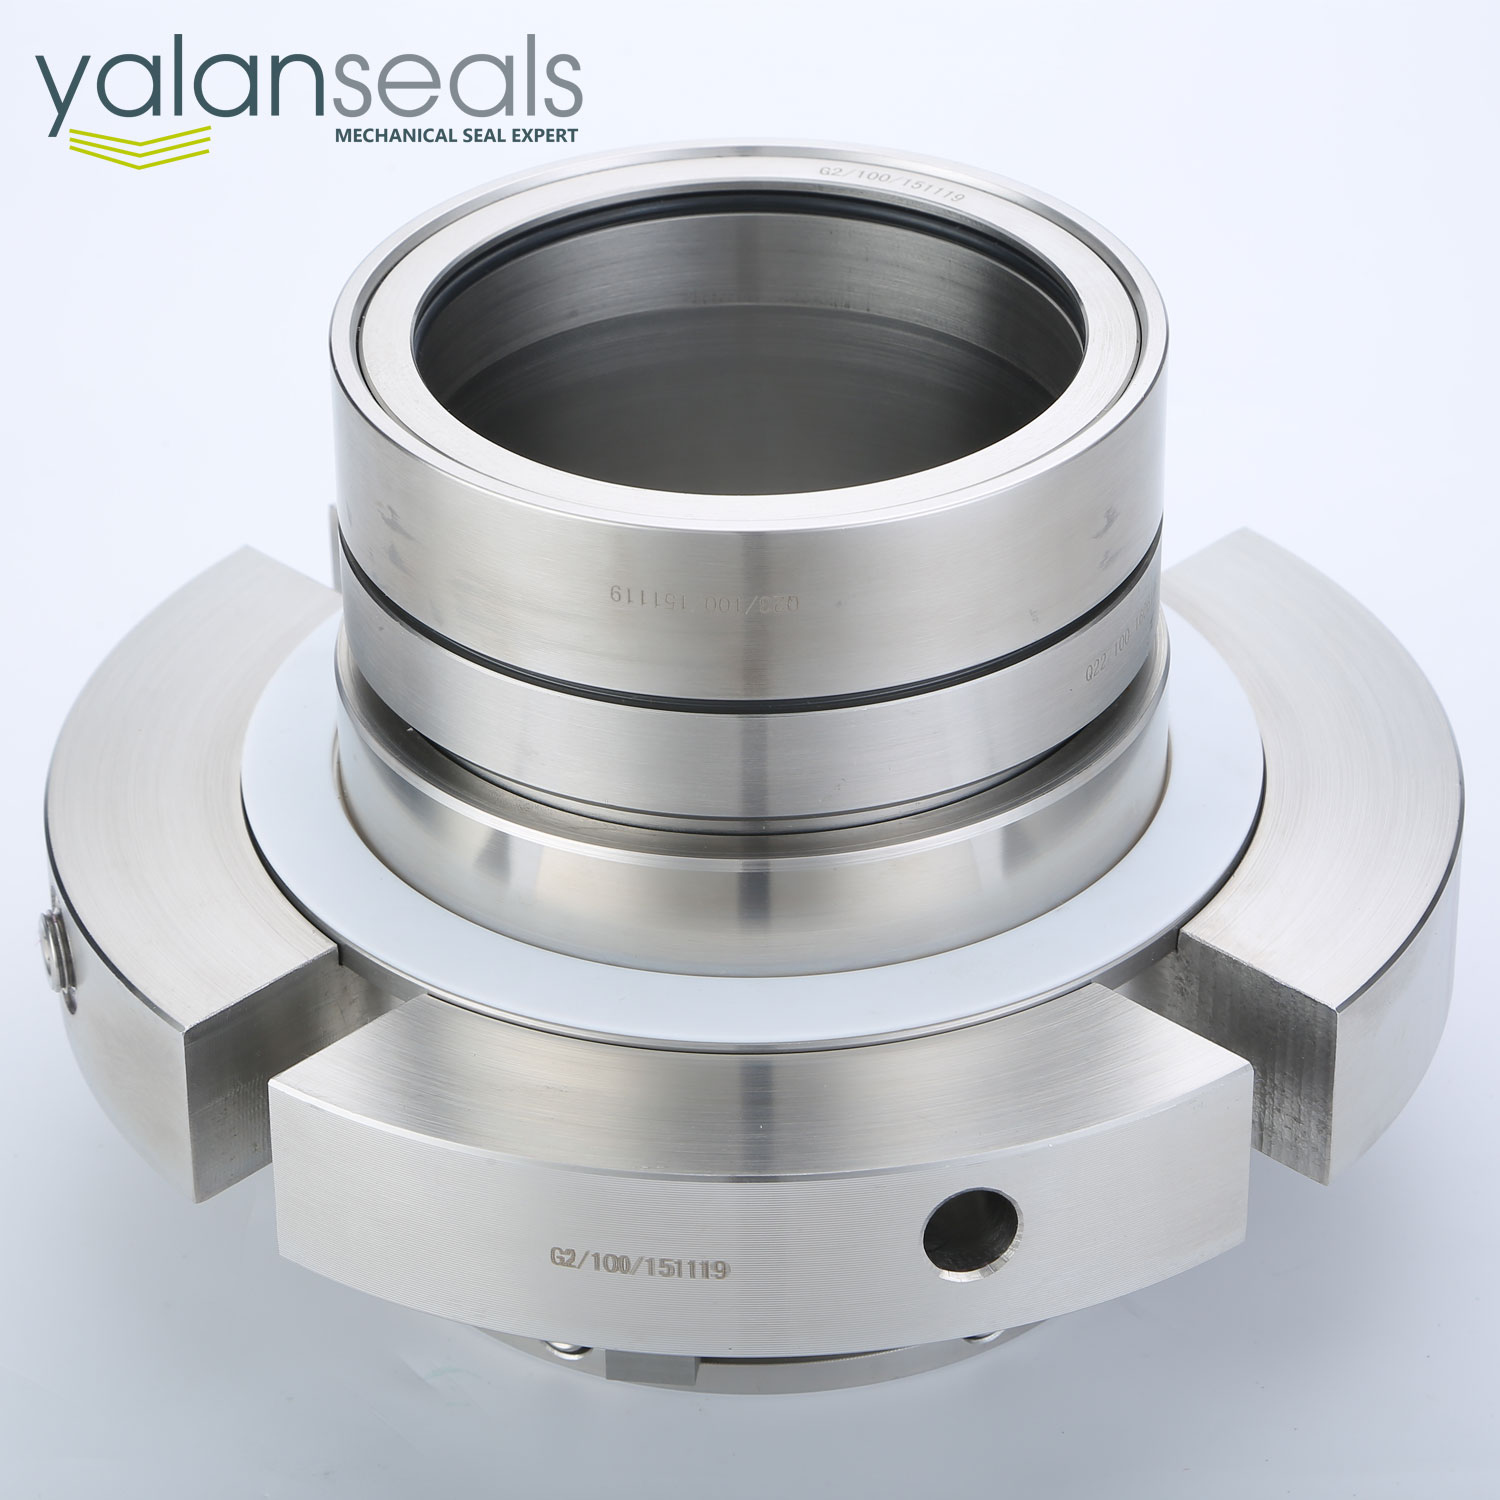 SB2 Mechanical Seal for Paper Pulp Pumps and Flue Gas Desulfurization System, Safematic Replacement Seal